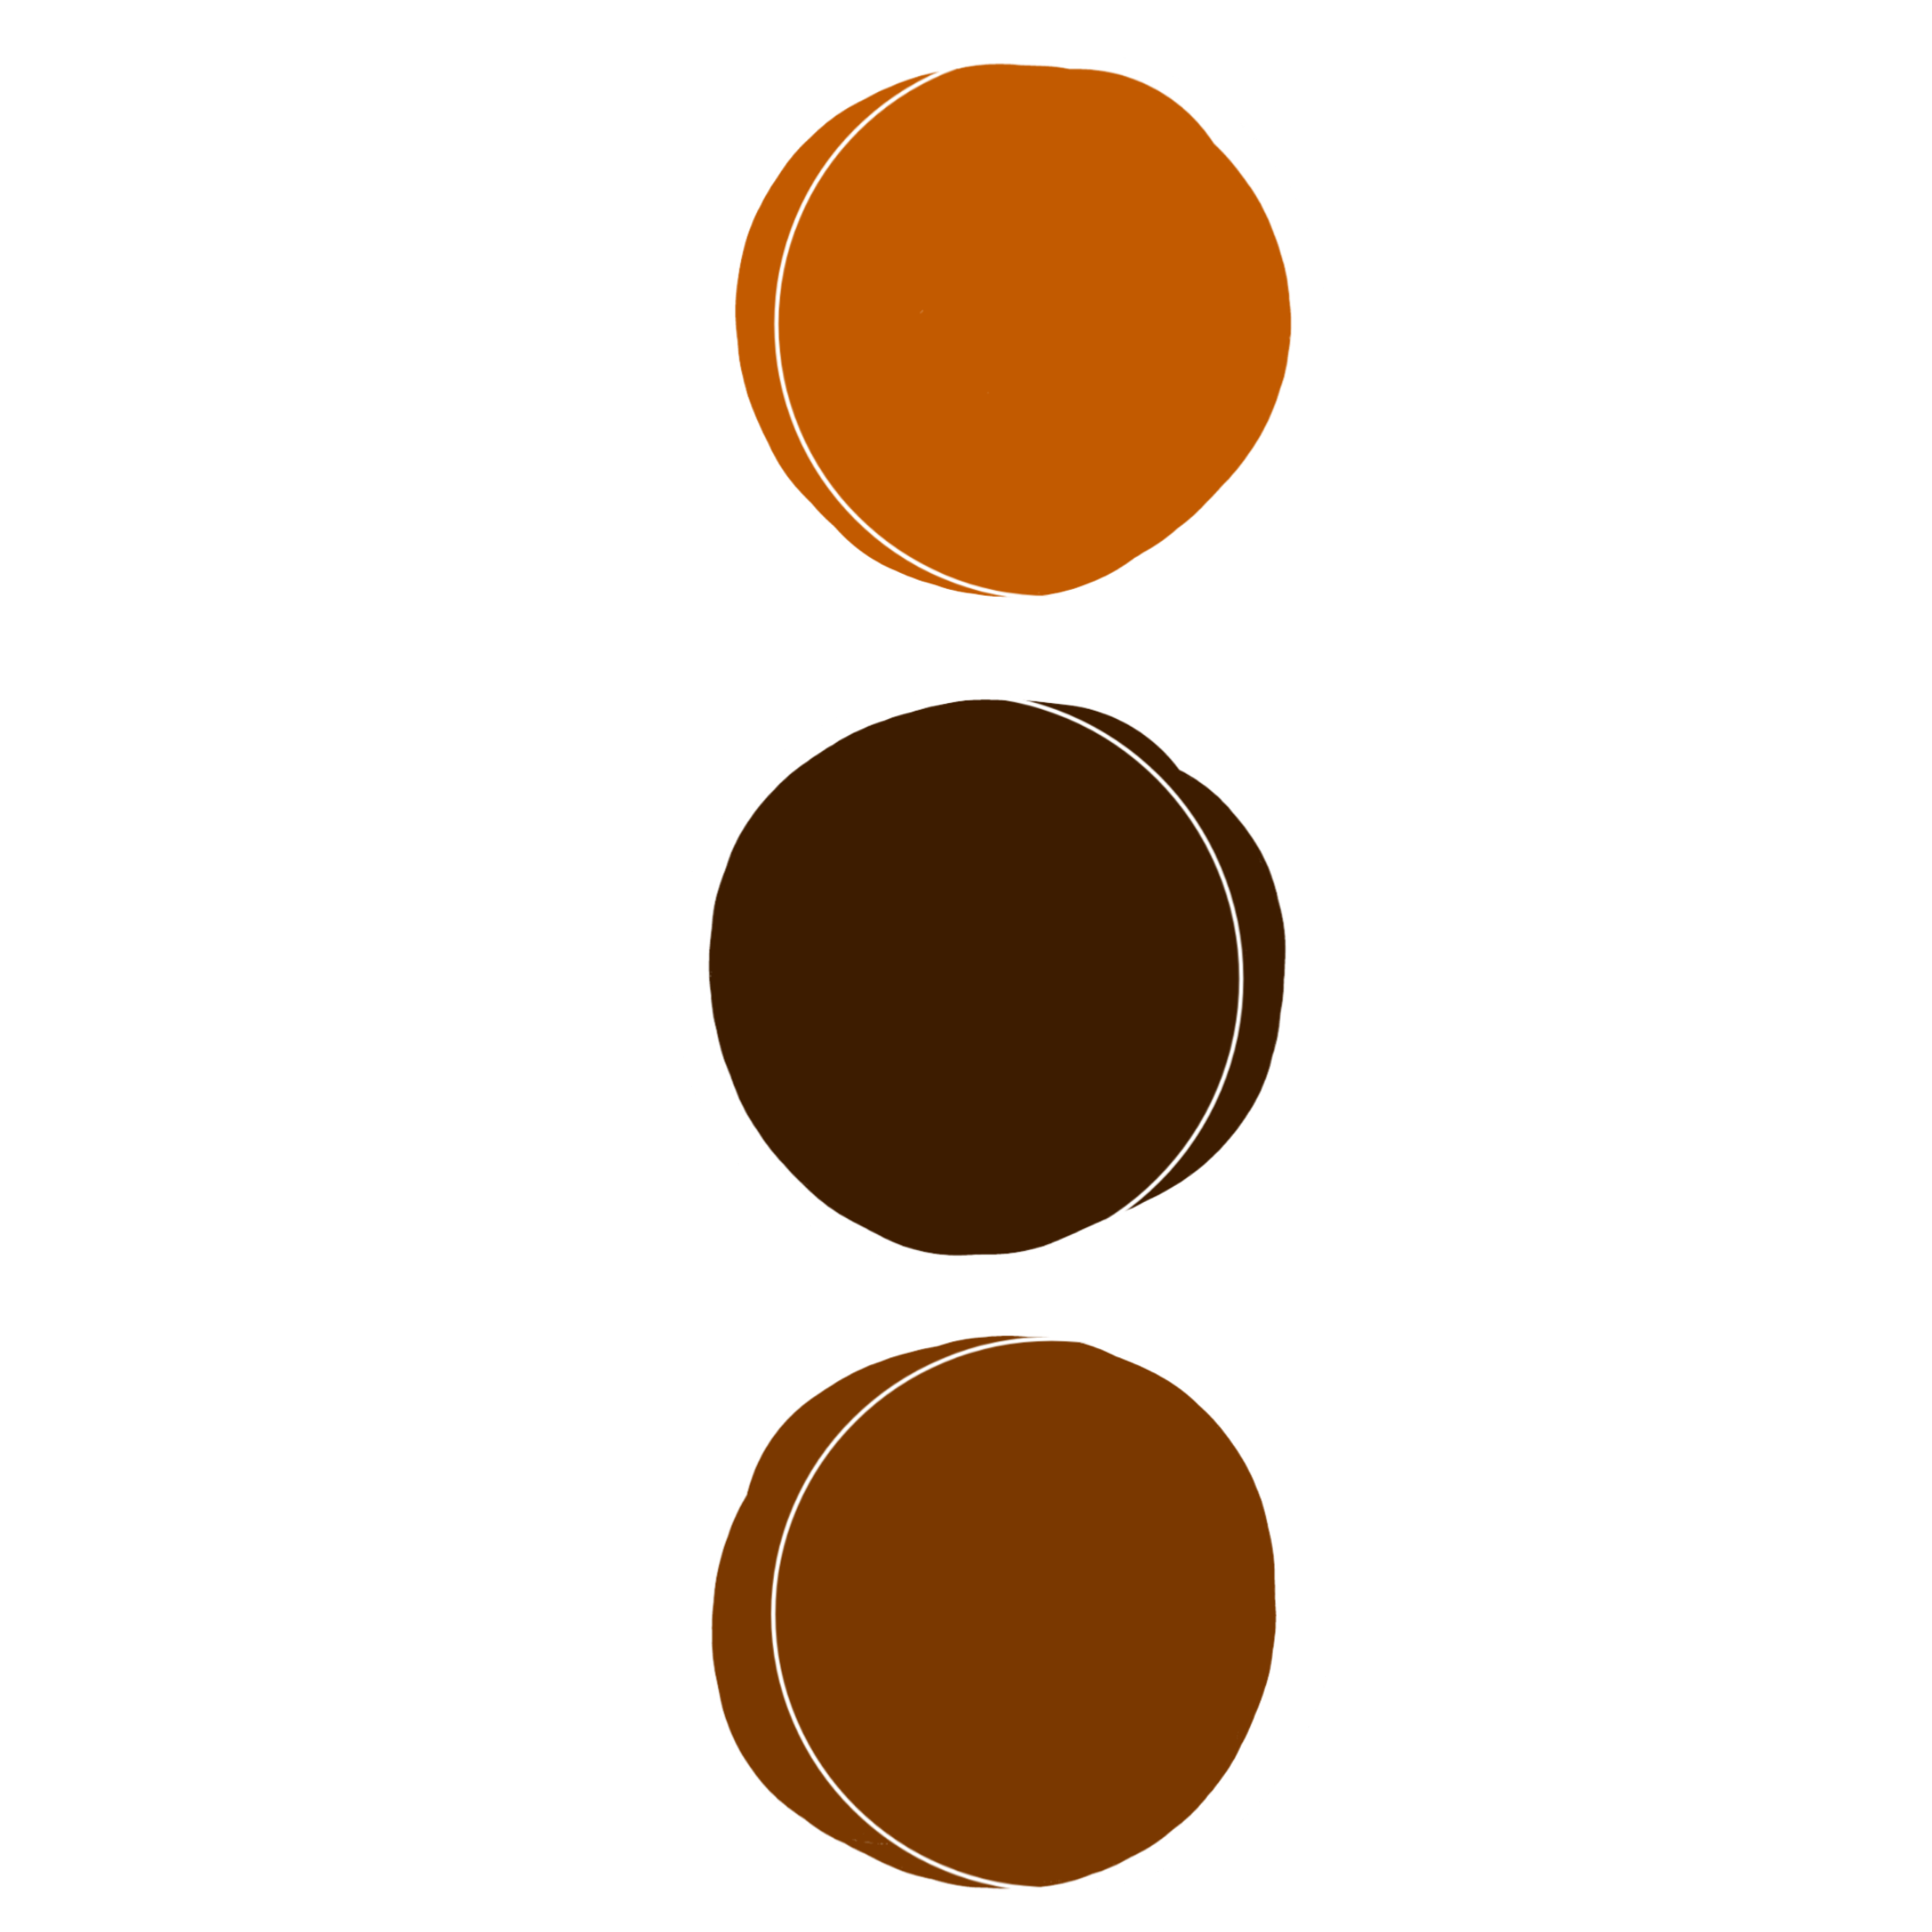 Sage And Brown Color Schemes: #colors # Color #aesthetic #circle #circle # Brown #tumblr